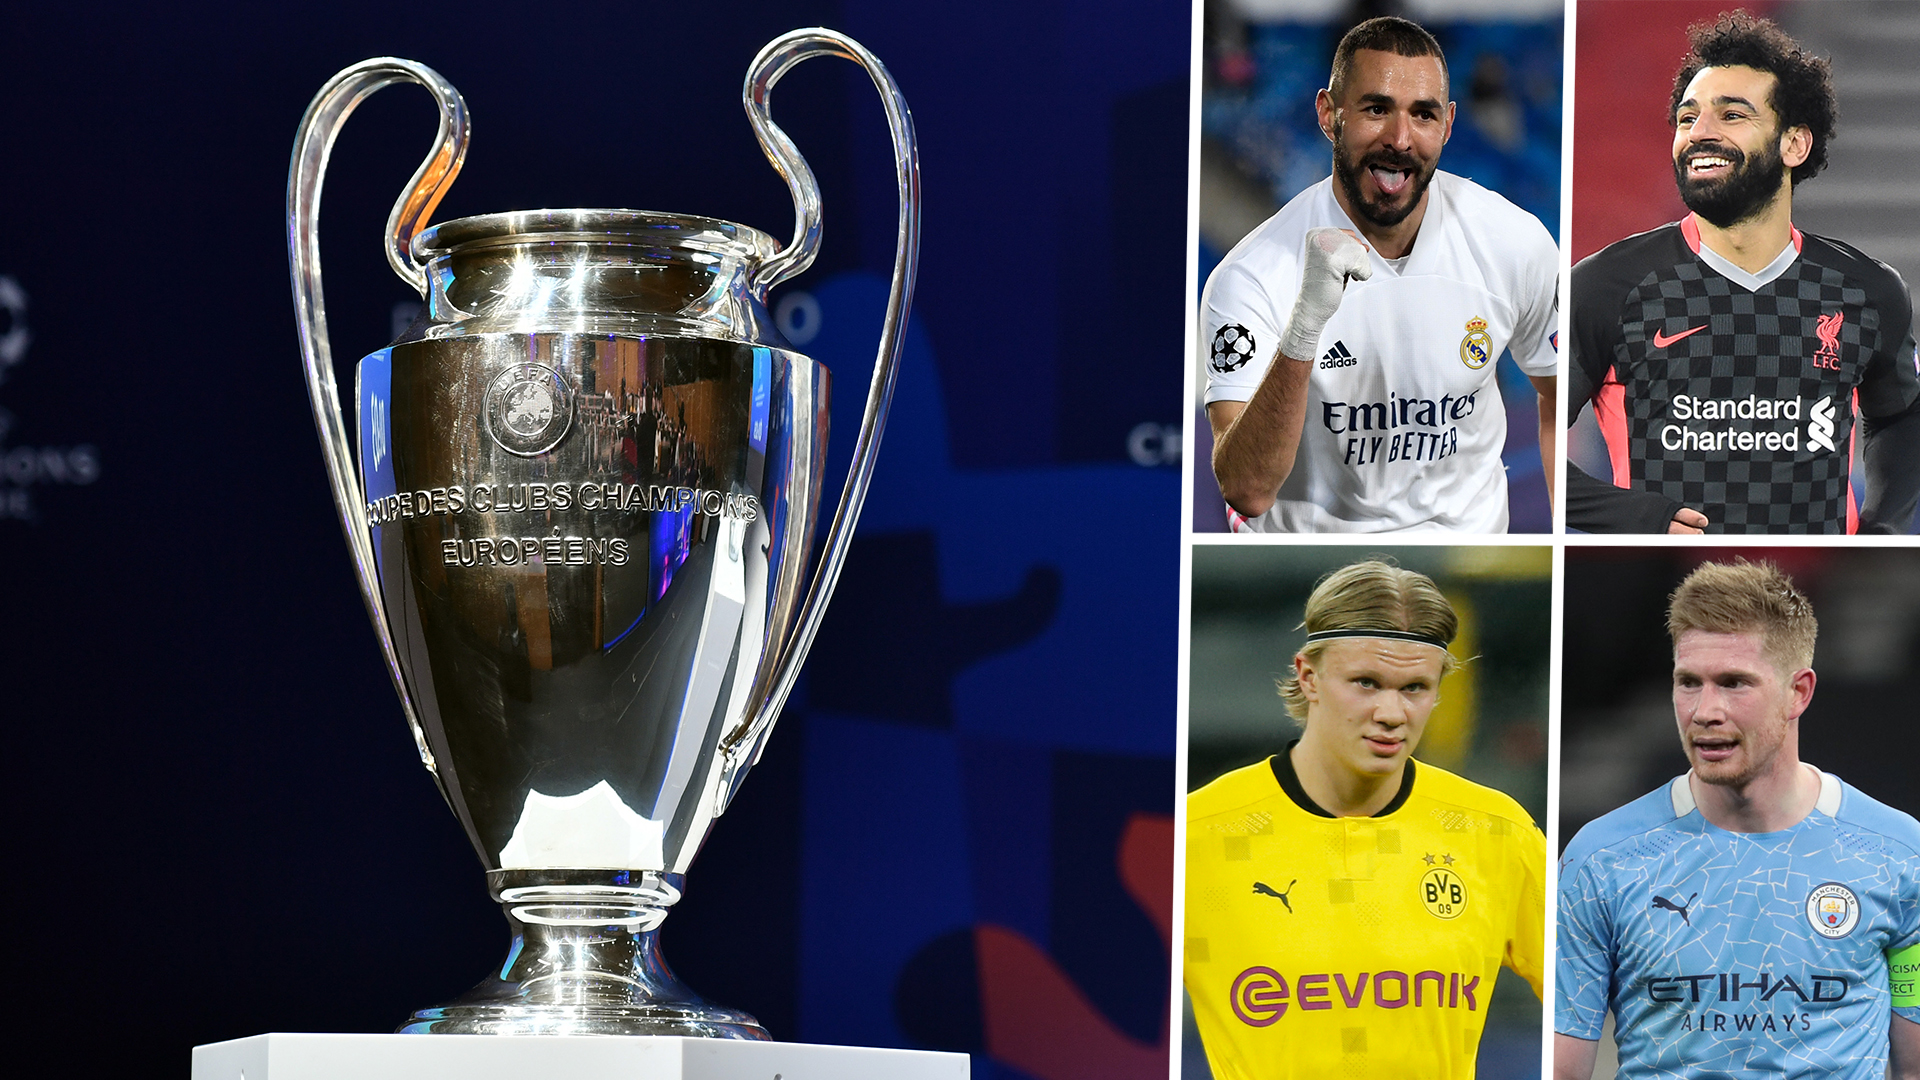 Champions League quarter-final draw: Liverpool land Real Madrid & Man City  face Dortmund - Country Highlights